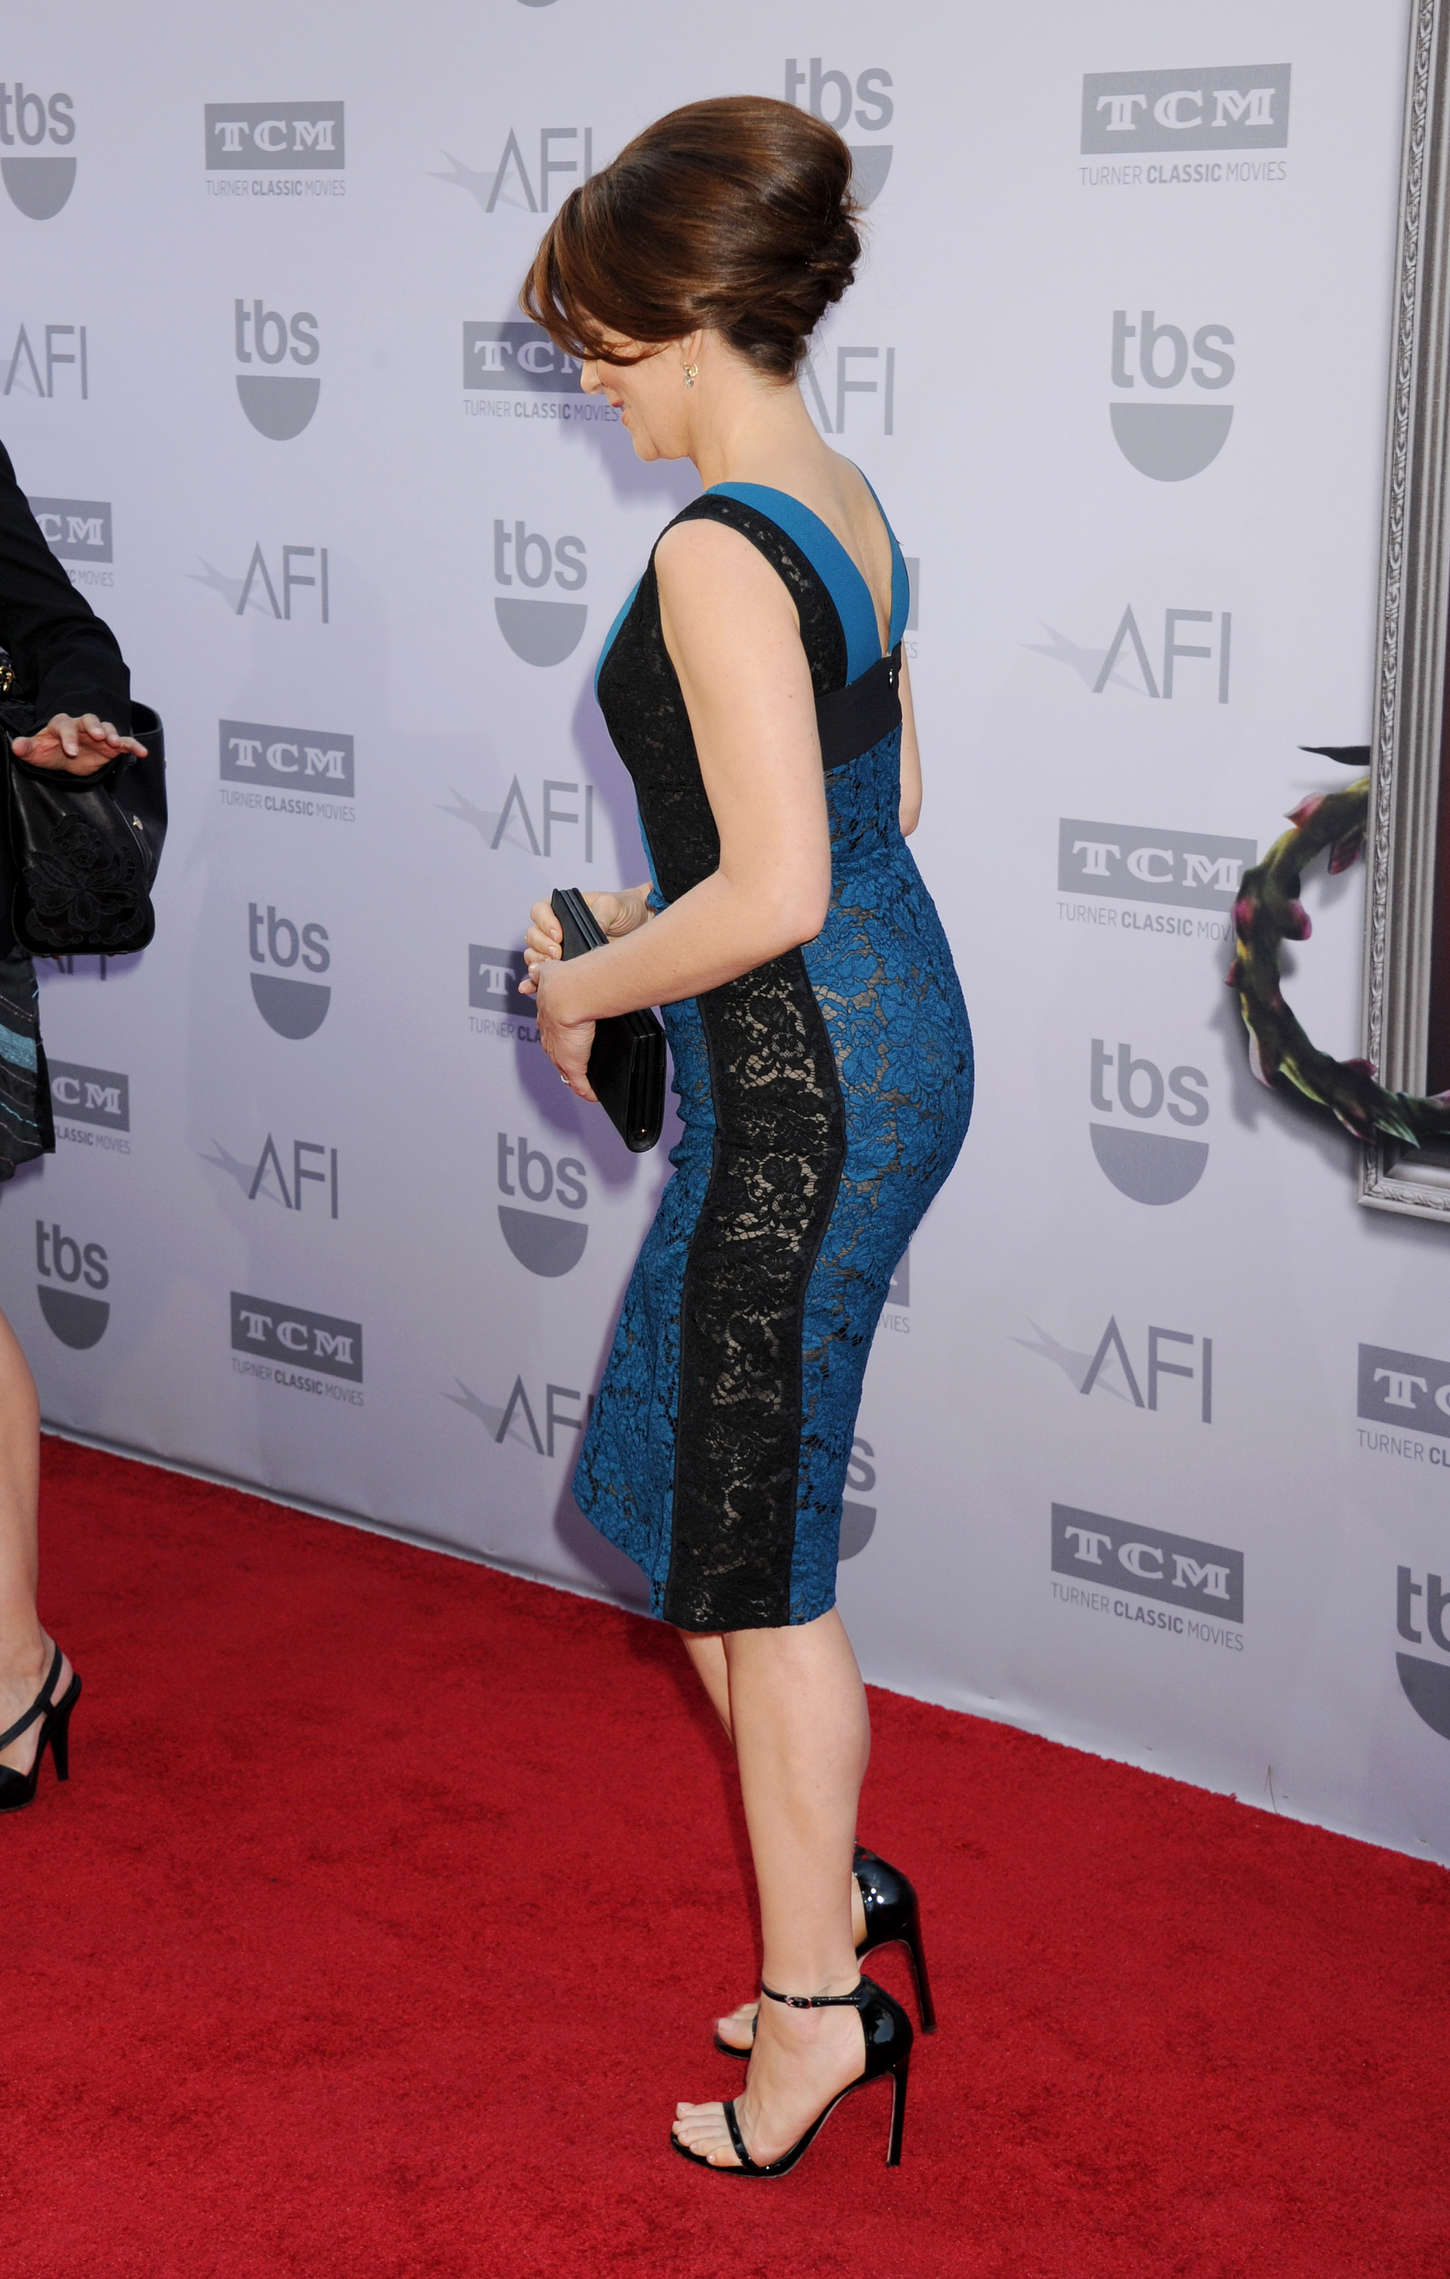 Tina Fey AFI Life Achievement Award Gala in Hollywood